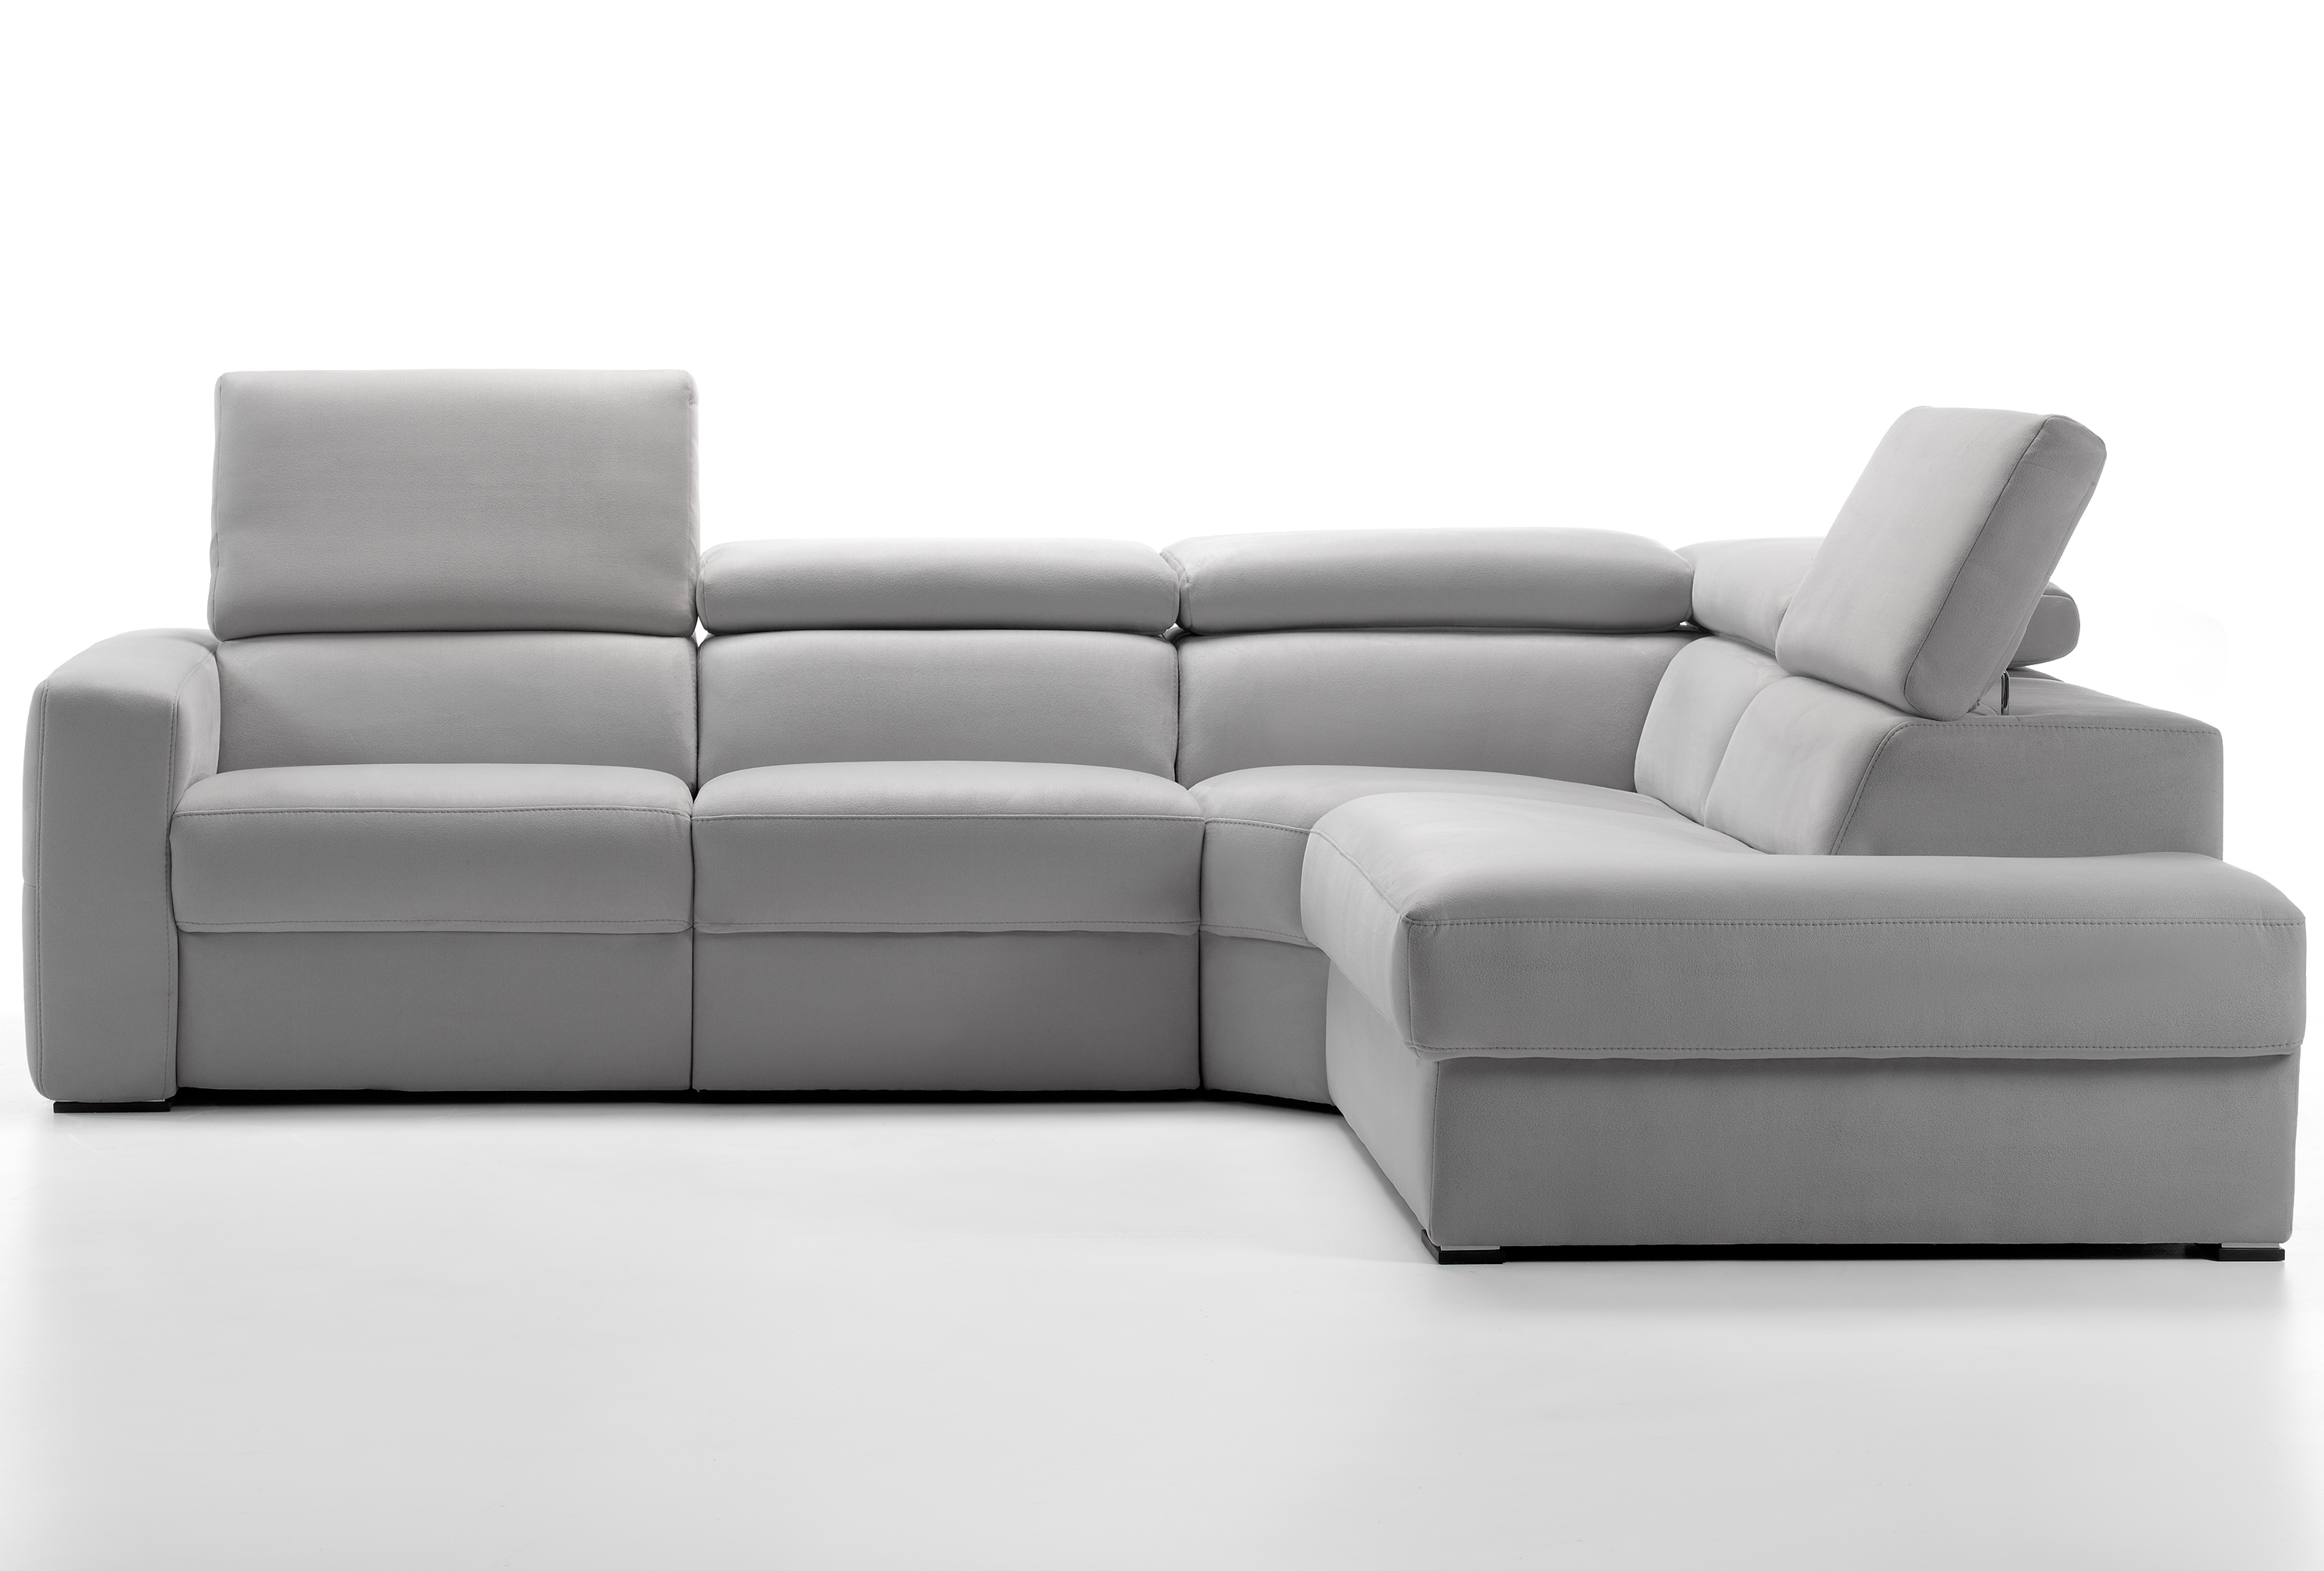 IL Decor Furniture ROM Belgium Themis Sectional Sofa